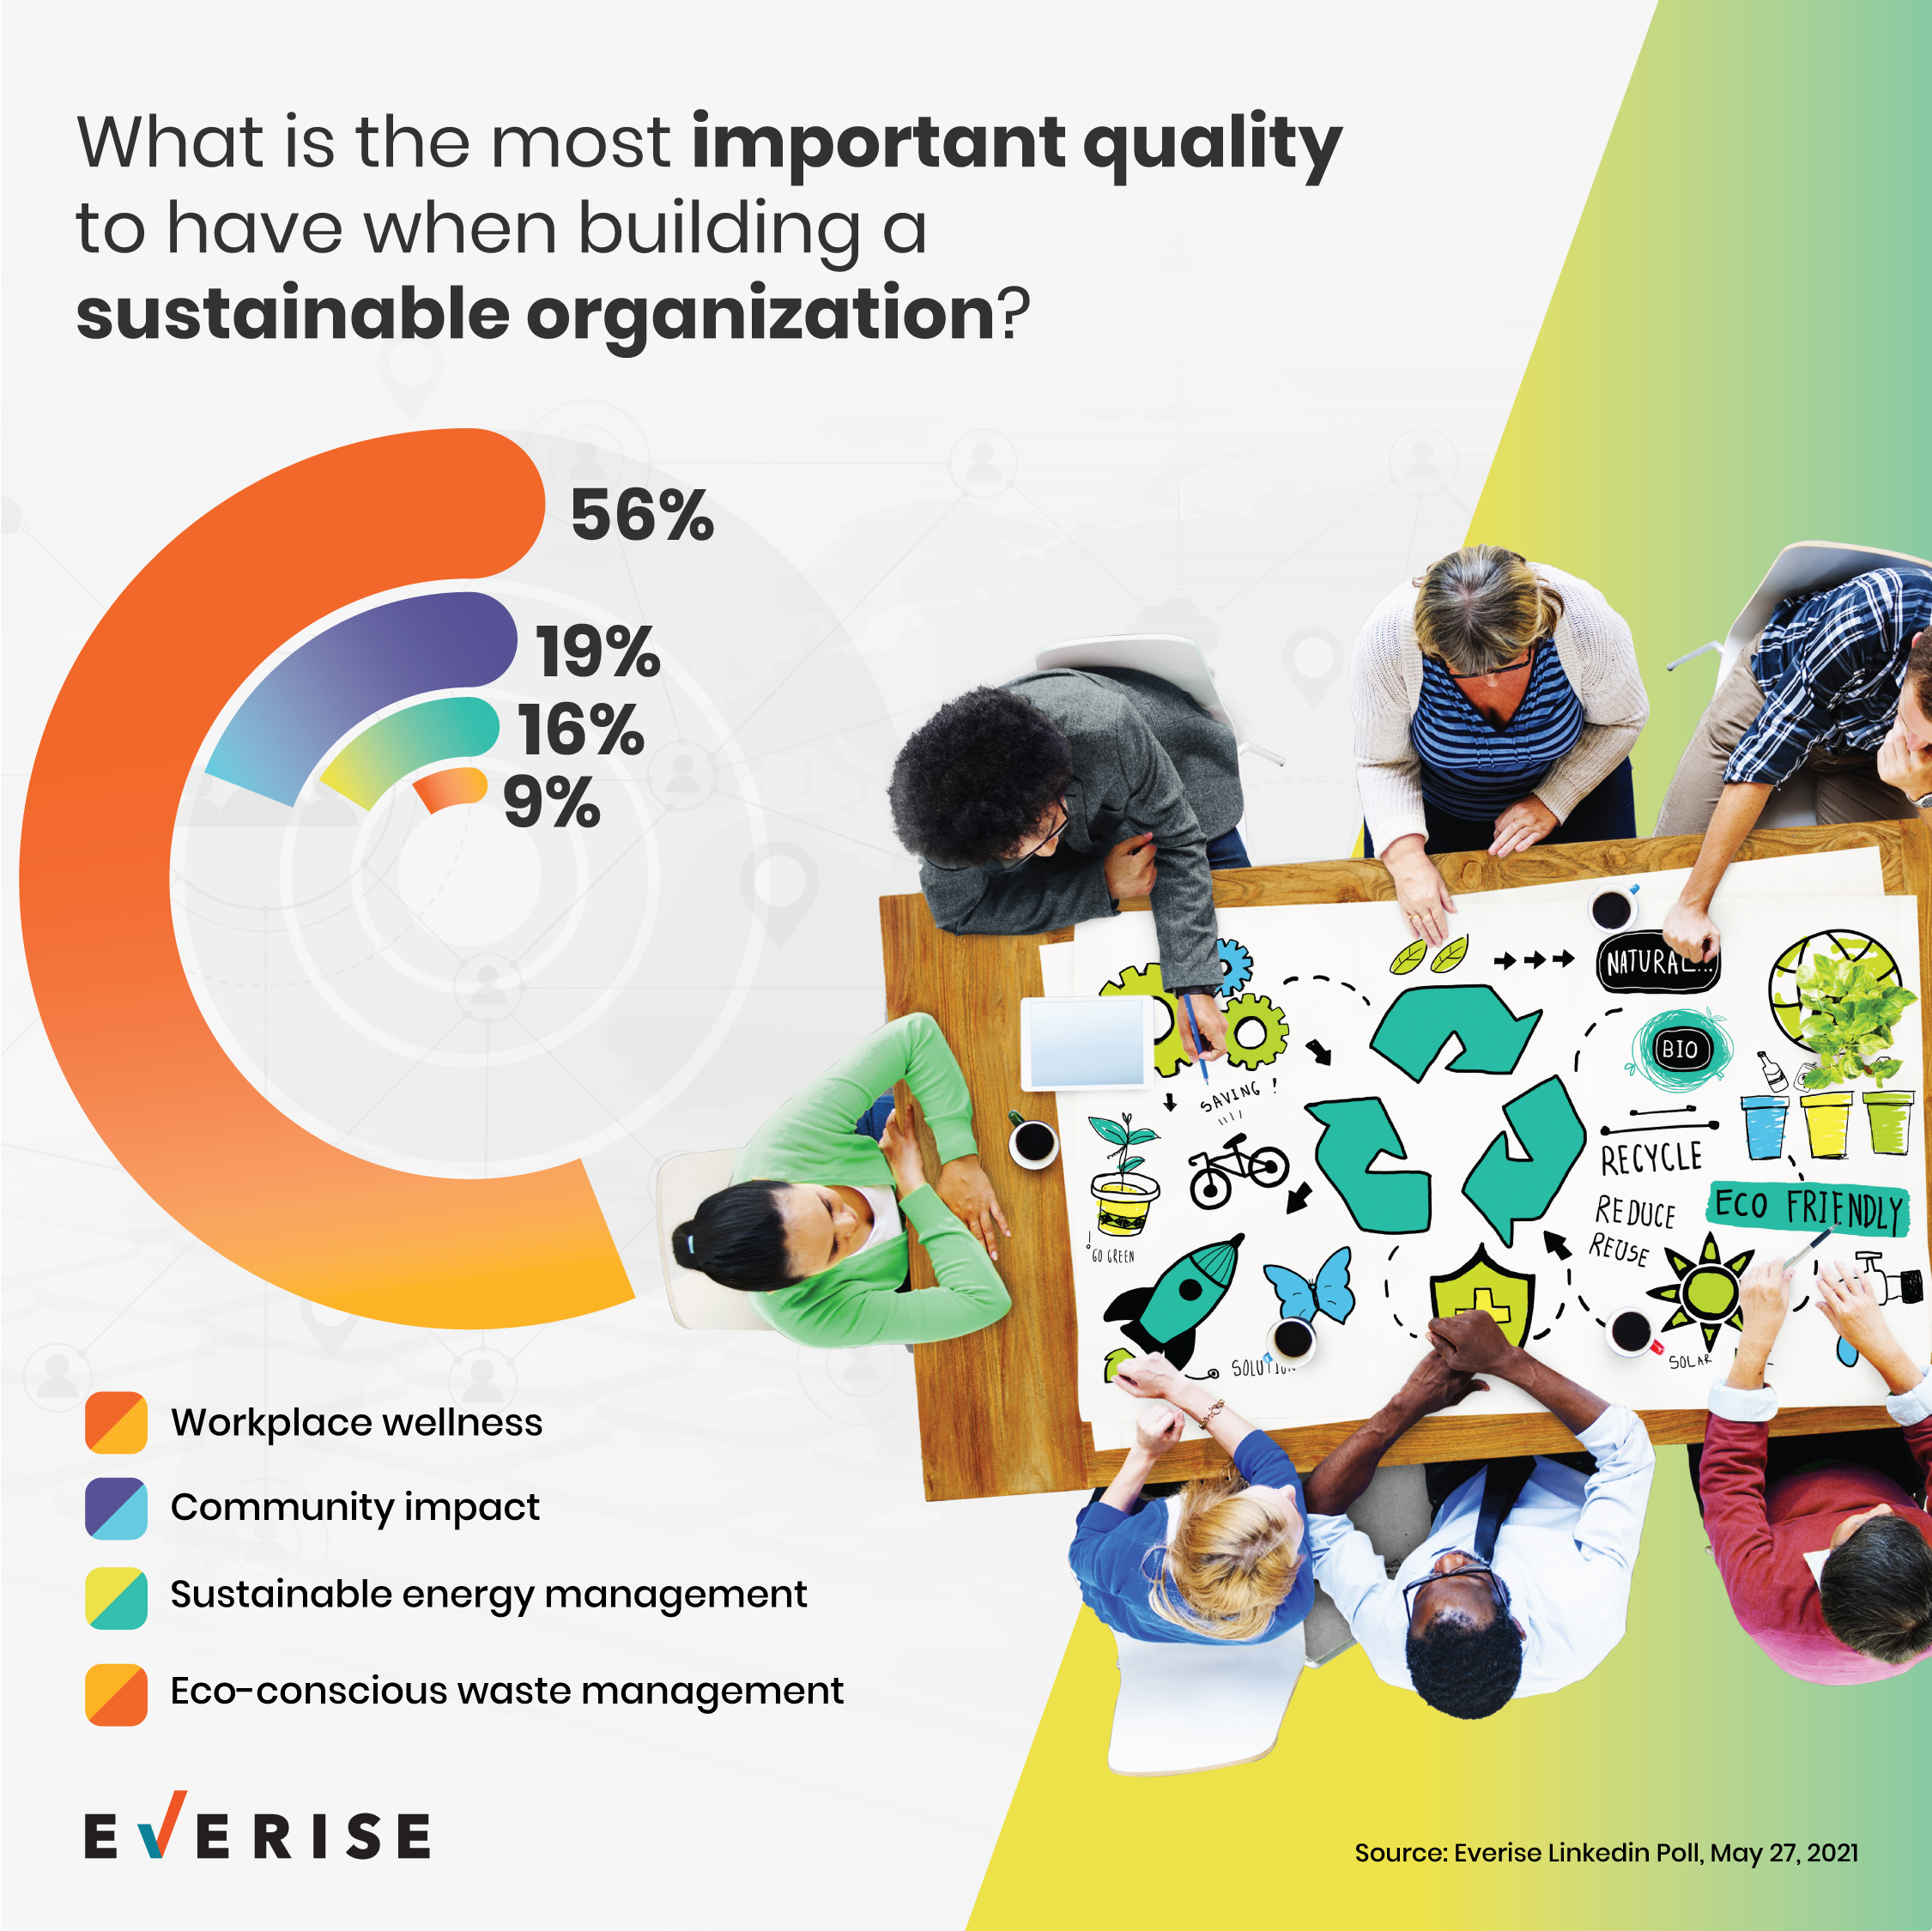 Most important quality for building a sustainable organization